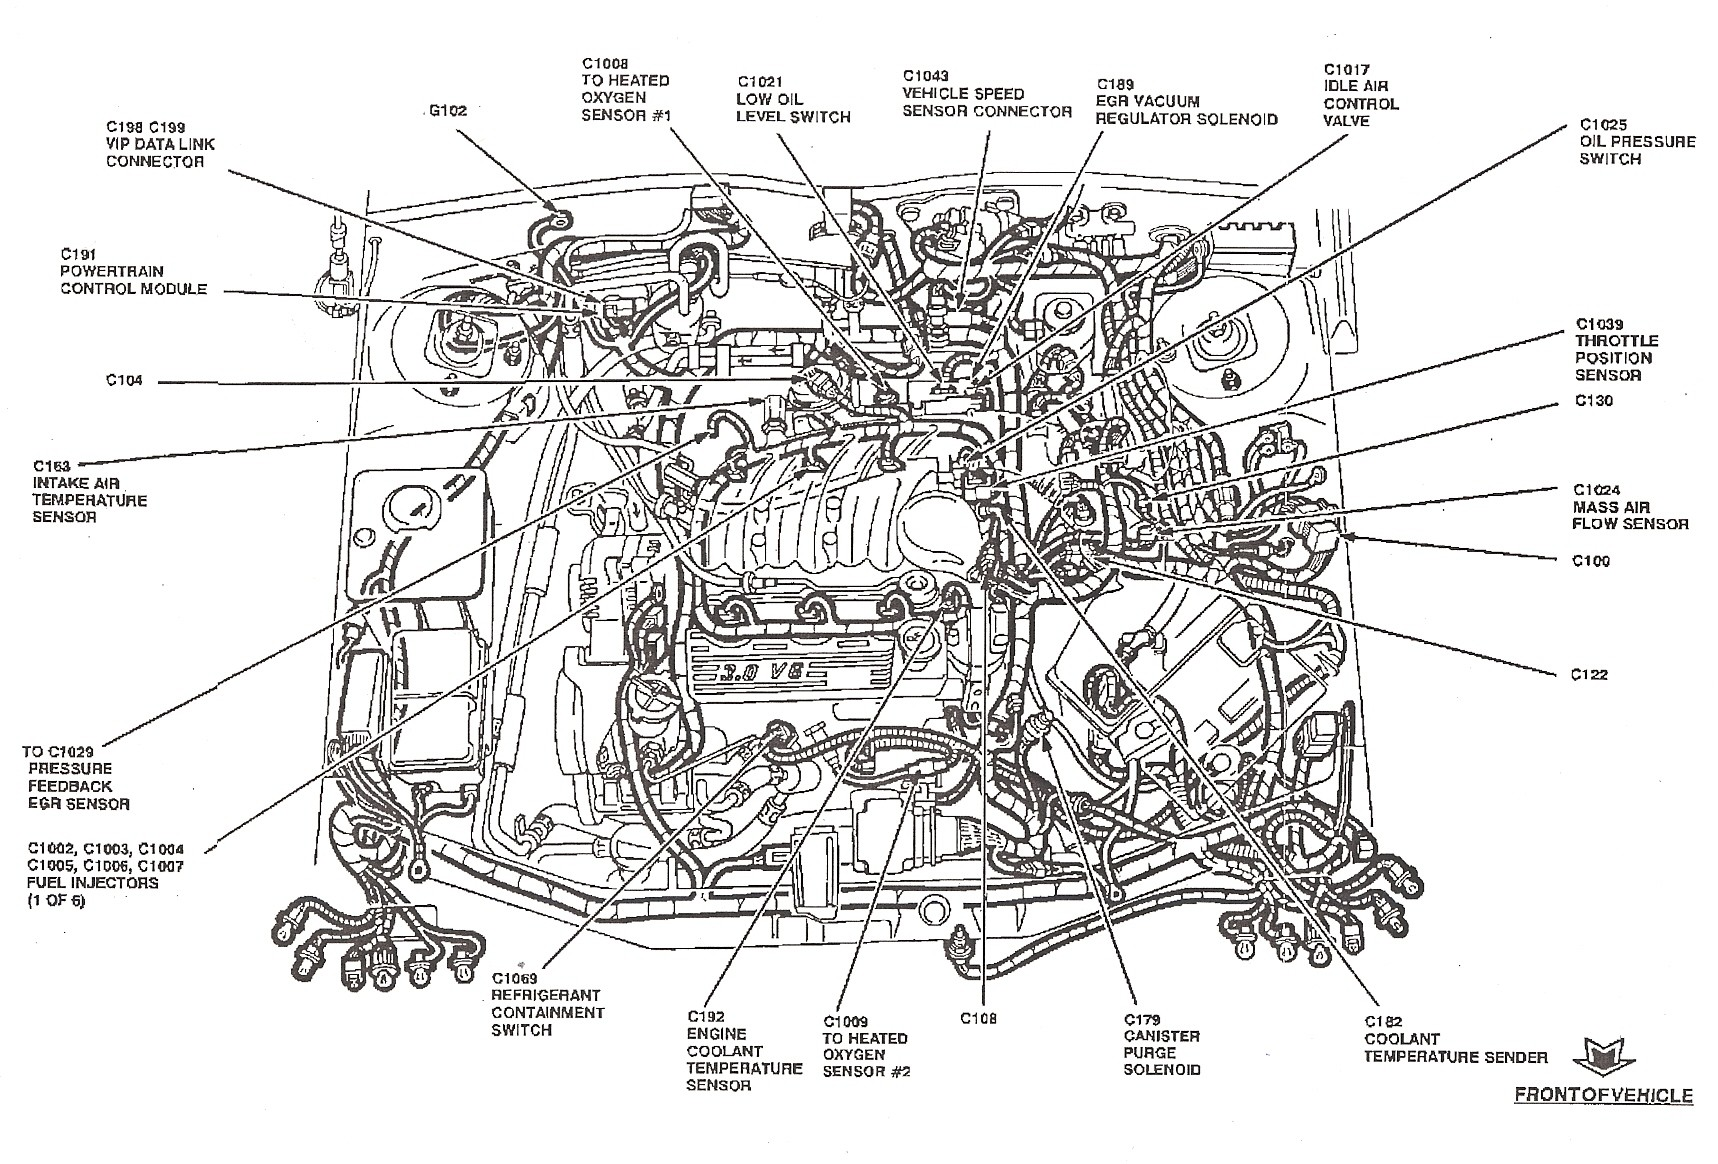 Parts Of Engine Diagram My Wiring Ford Taurus V6 Vortec Zetec Vacuum At Ww38eeautoresponder